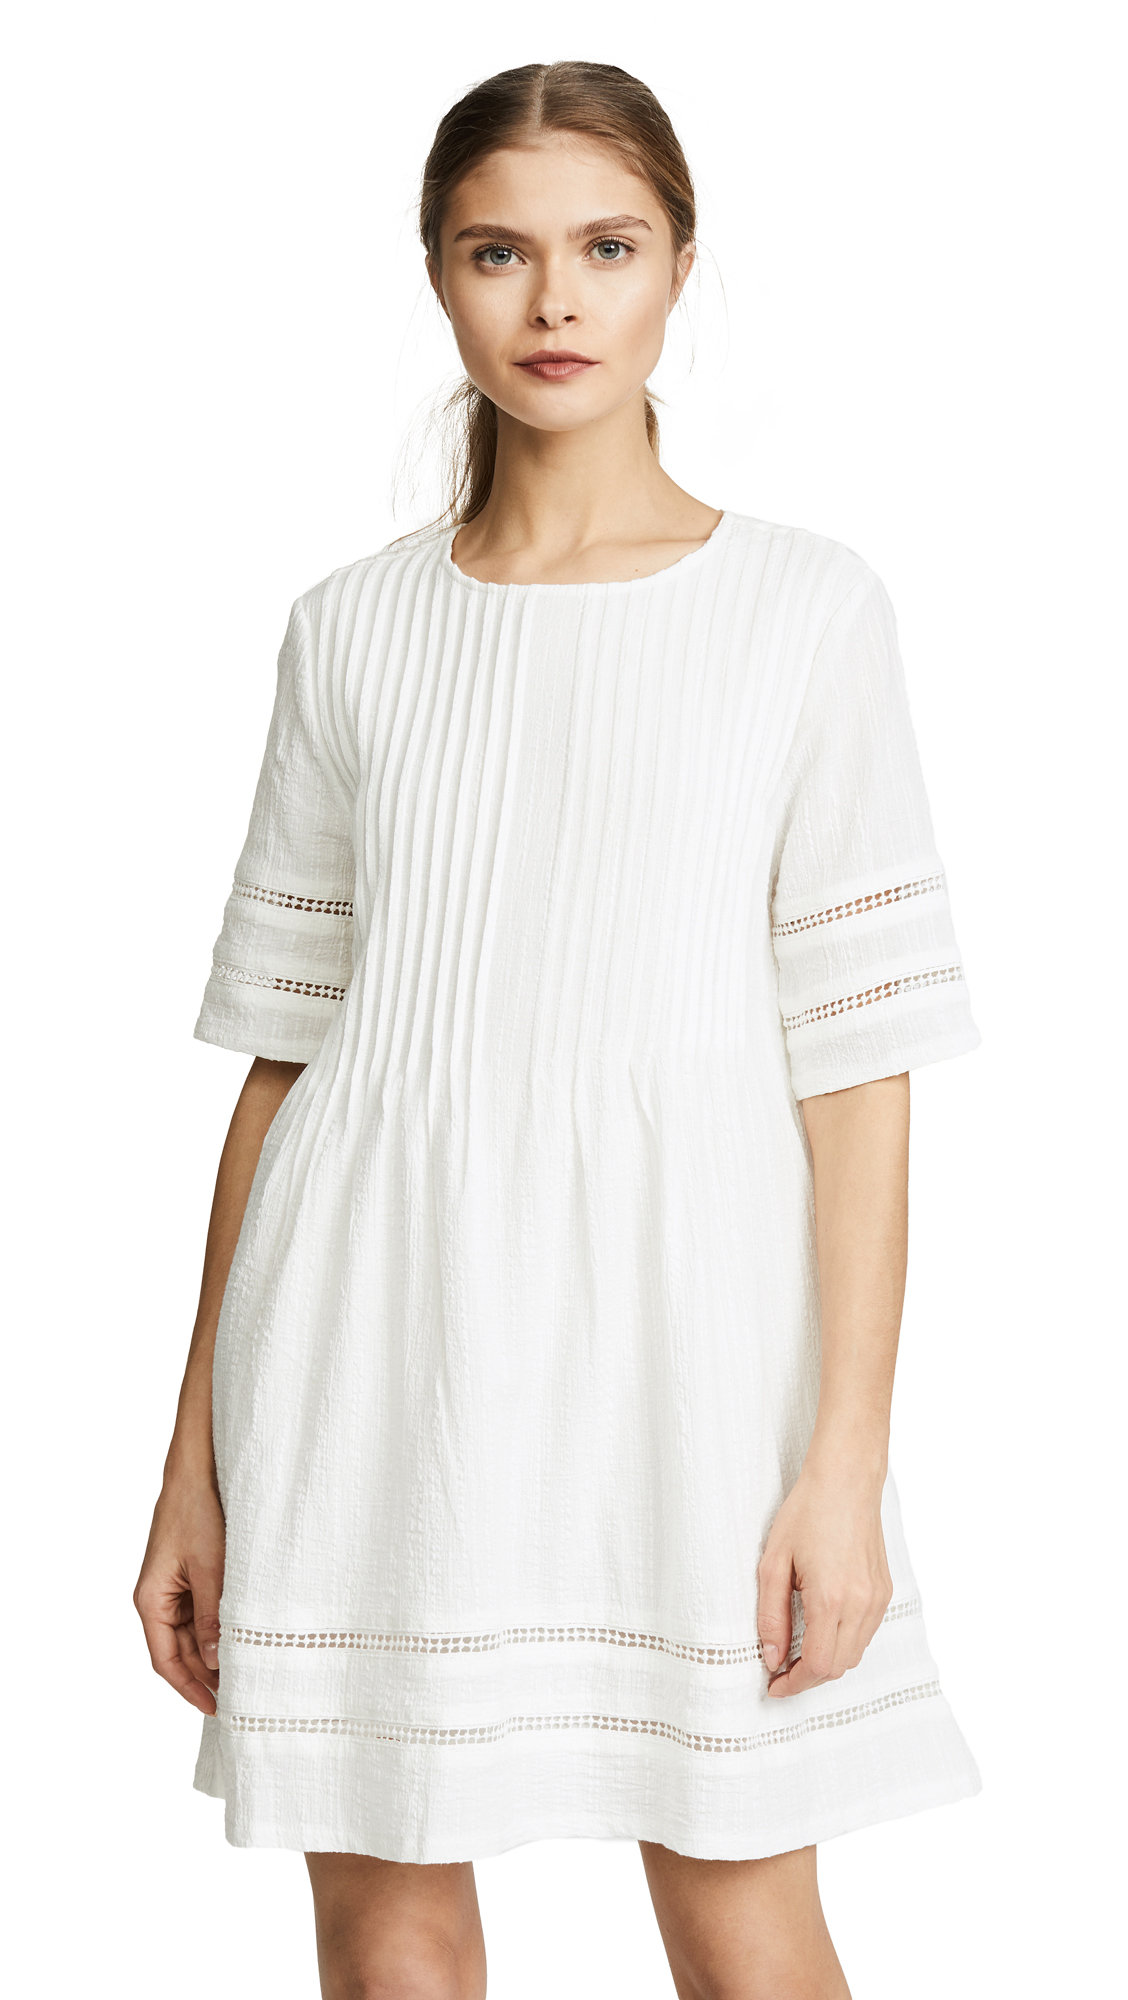 KNOT SISTERS Phillips Dress in White